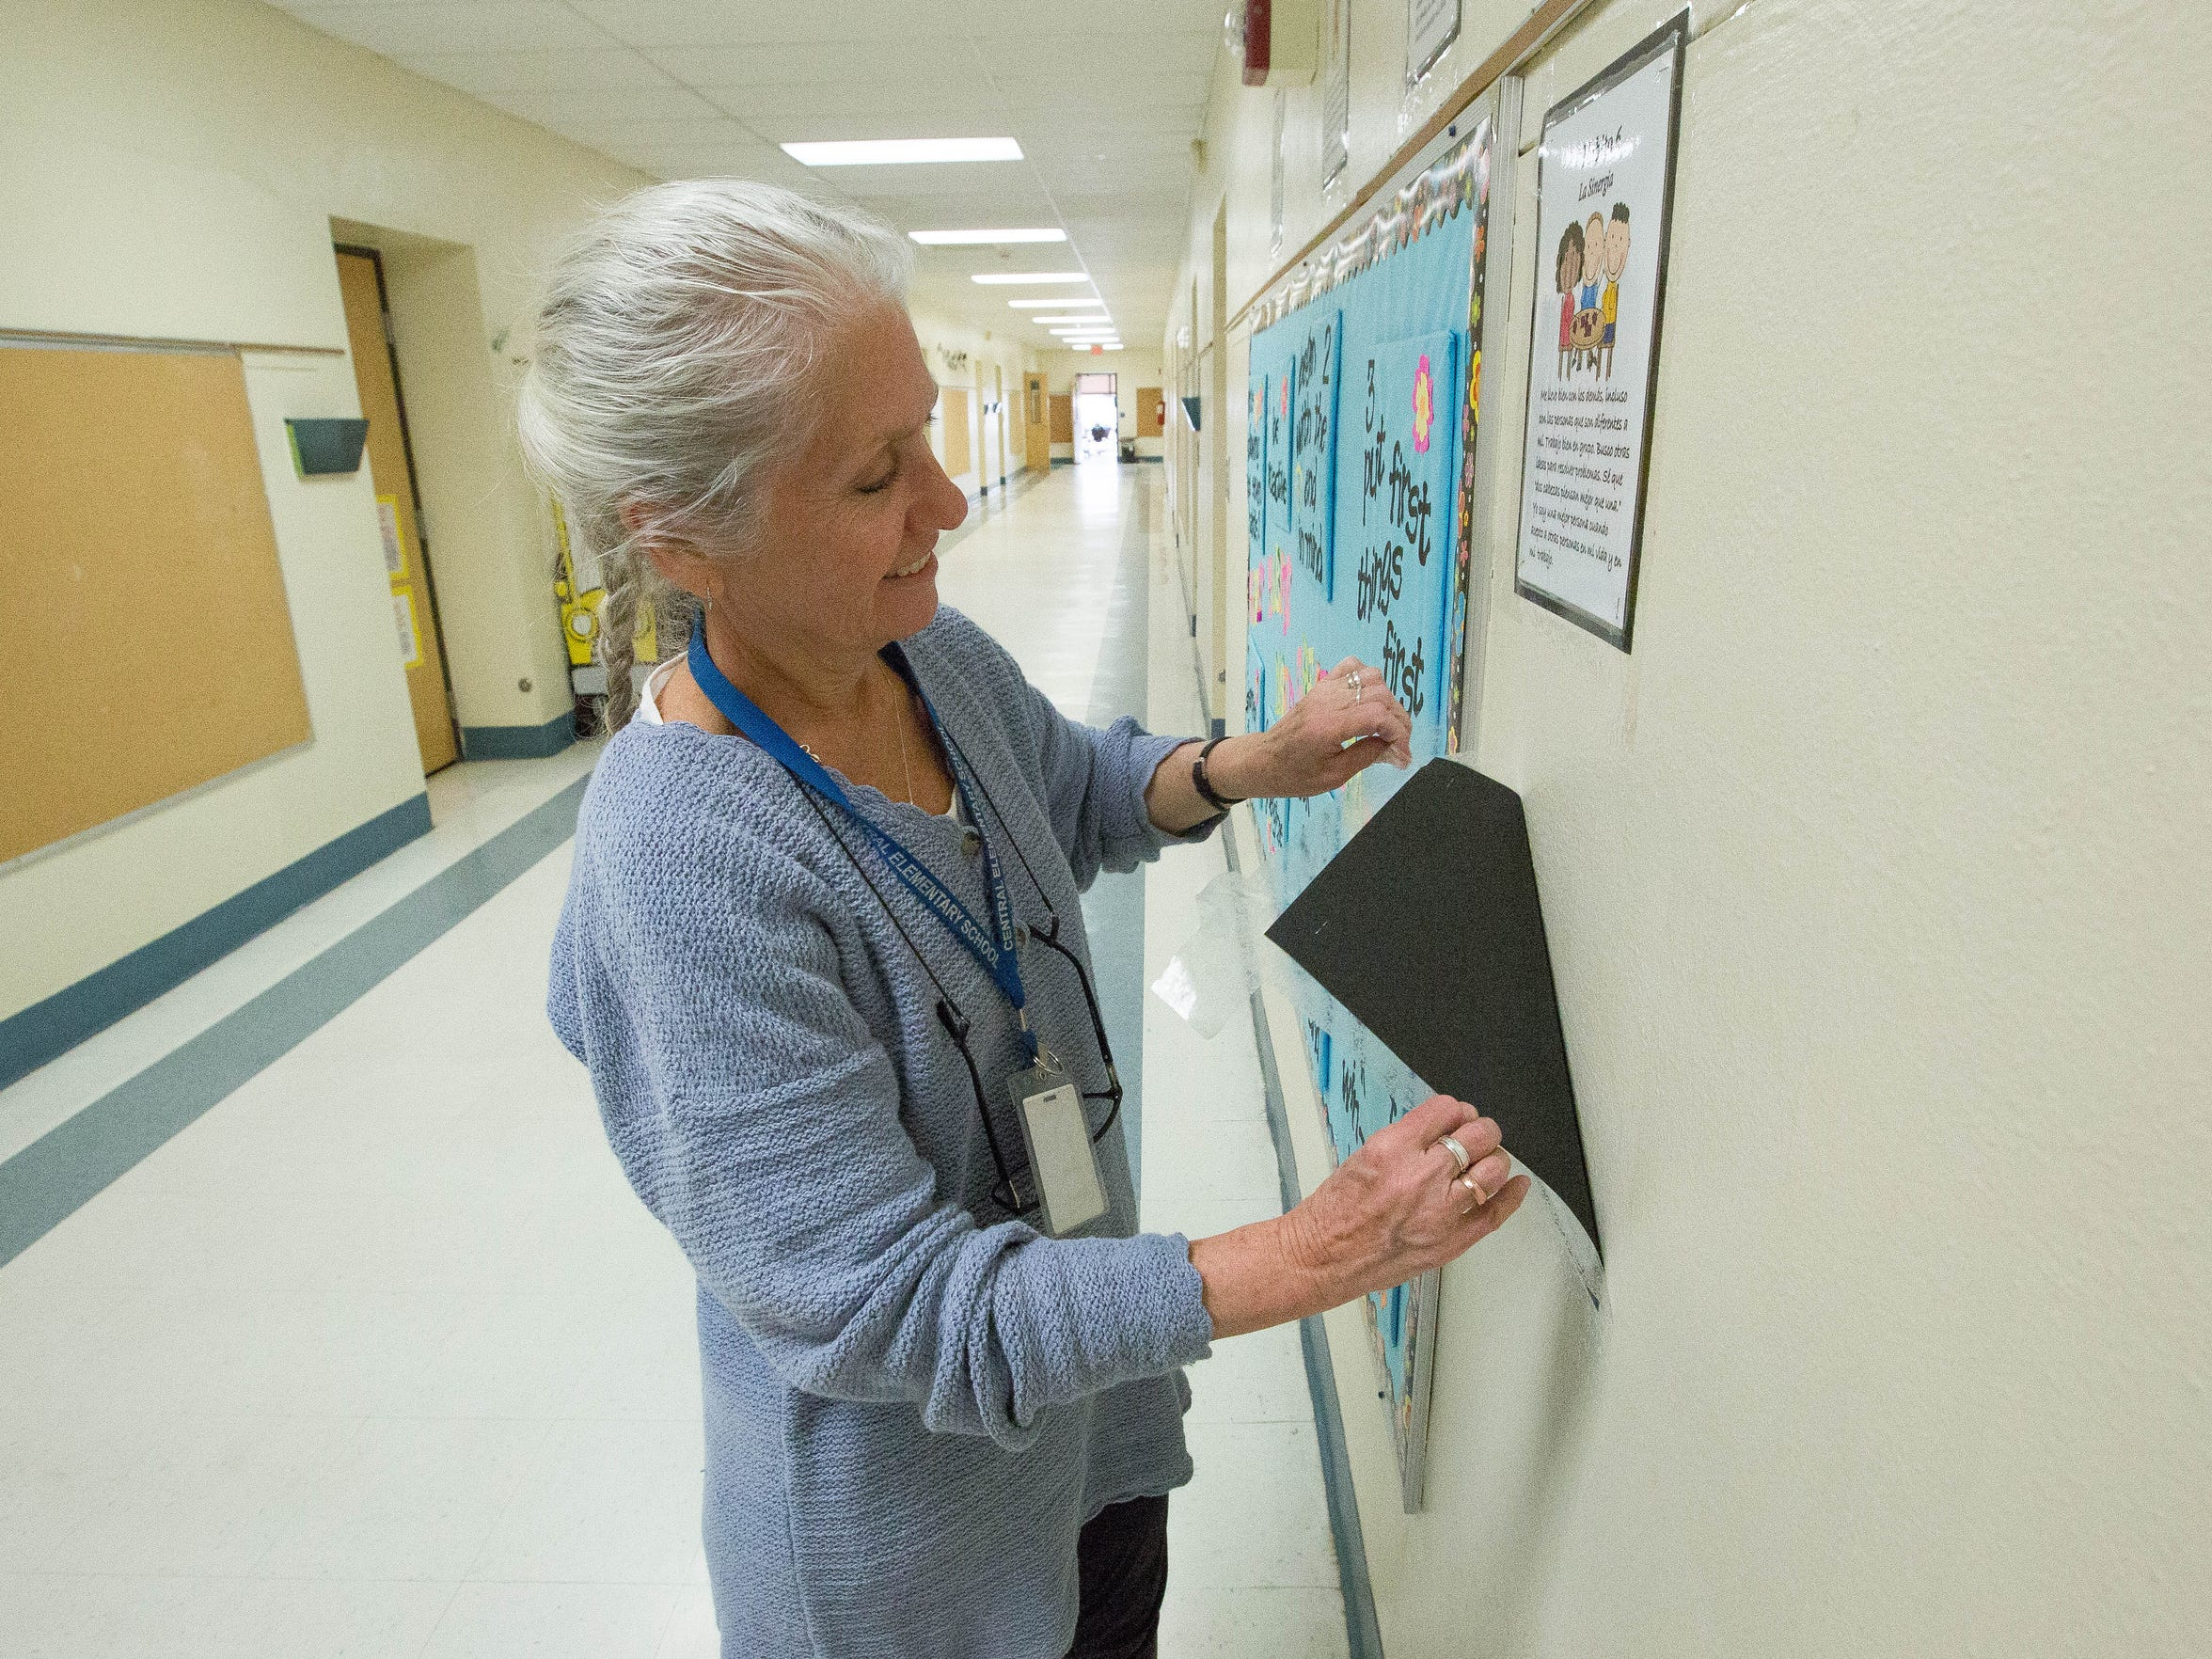 Eunice Zemek, the Title I instructional specialist at Central Elementary, pulls posters from the walls of the empty school, Thursday January 18, 2018. The students at the school were moved to St. Paul's United Methodist Church and the Las Cruces Boys and Girls Club while Central Elementary is cleaned of mold that was found recently.